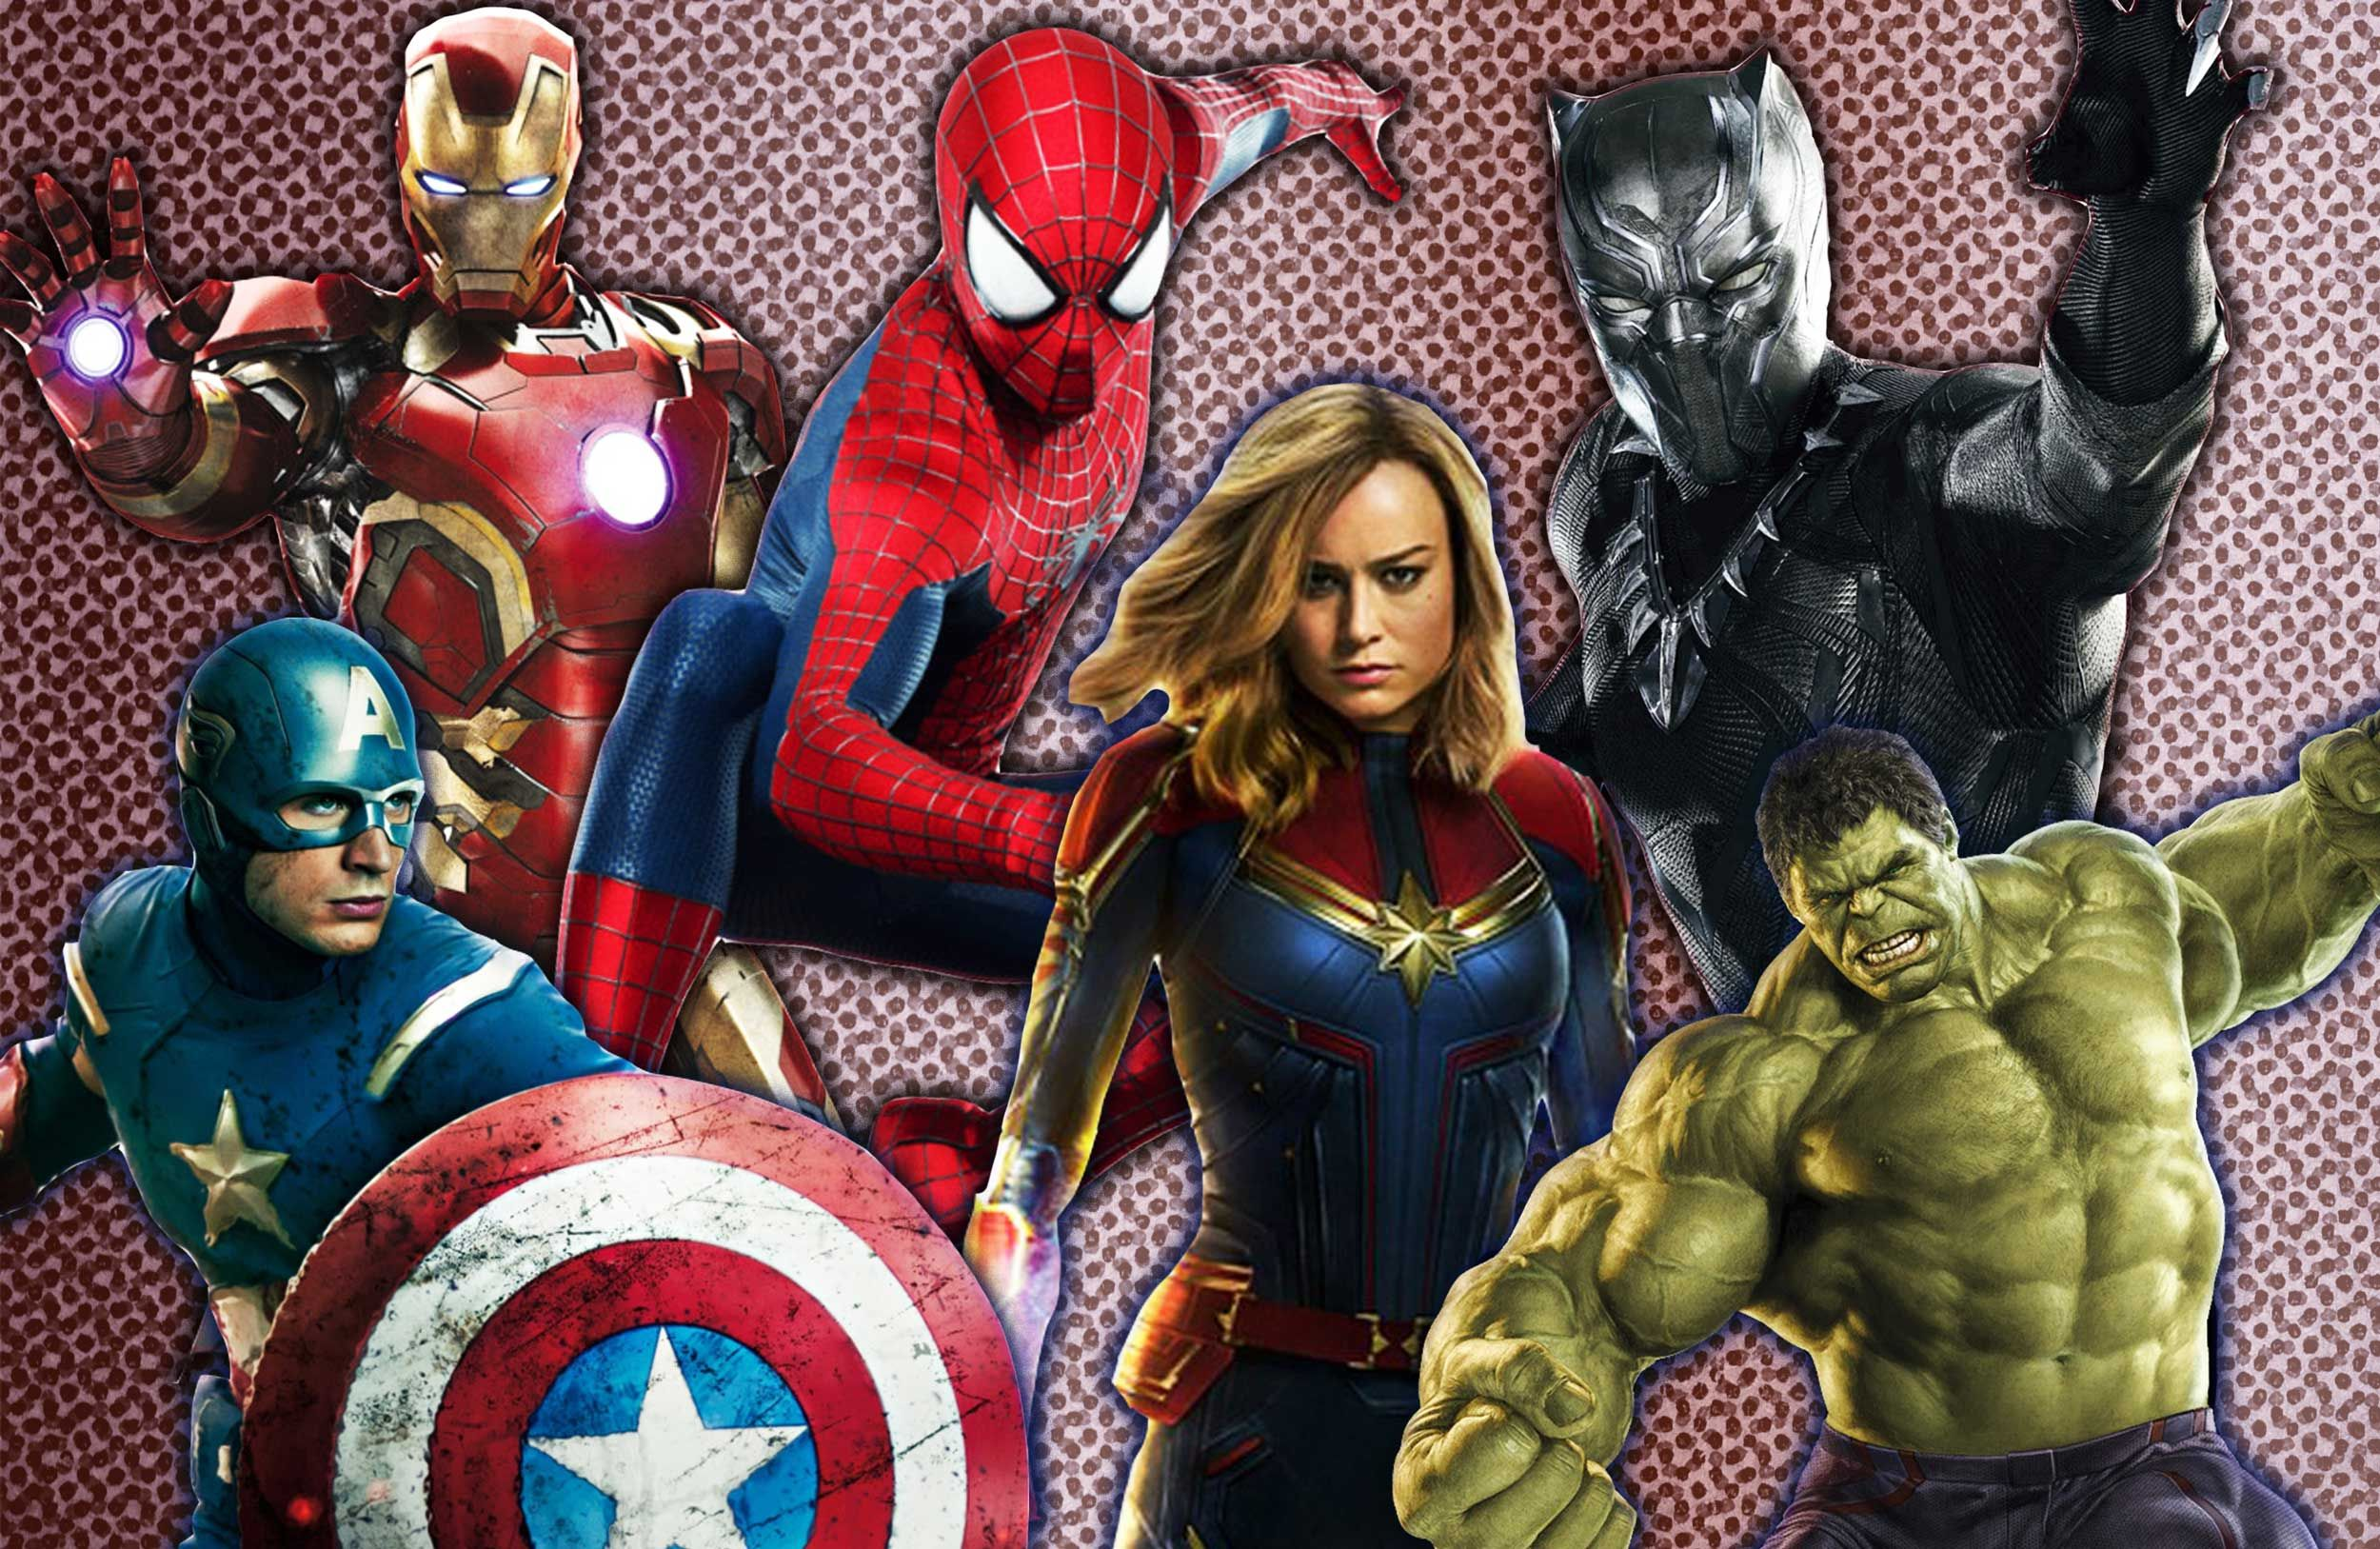 Movel Moveis Marvel Movies Release Schedule Every Superhero Film Coming Out